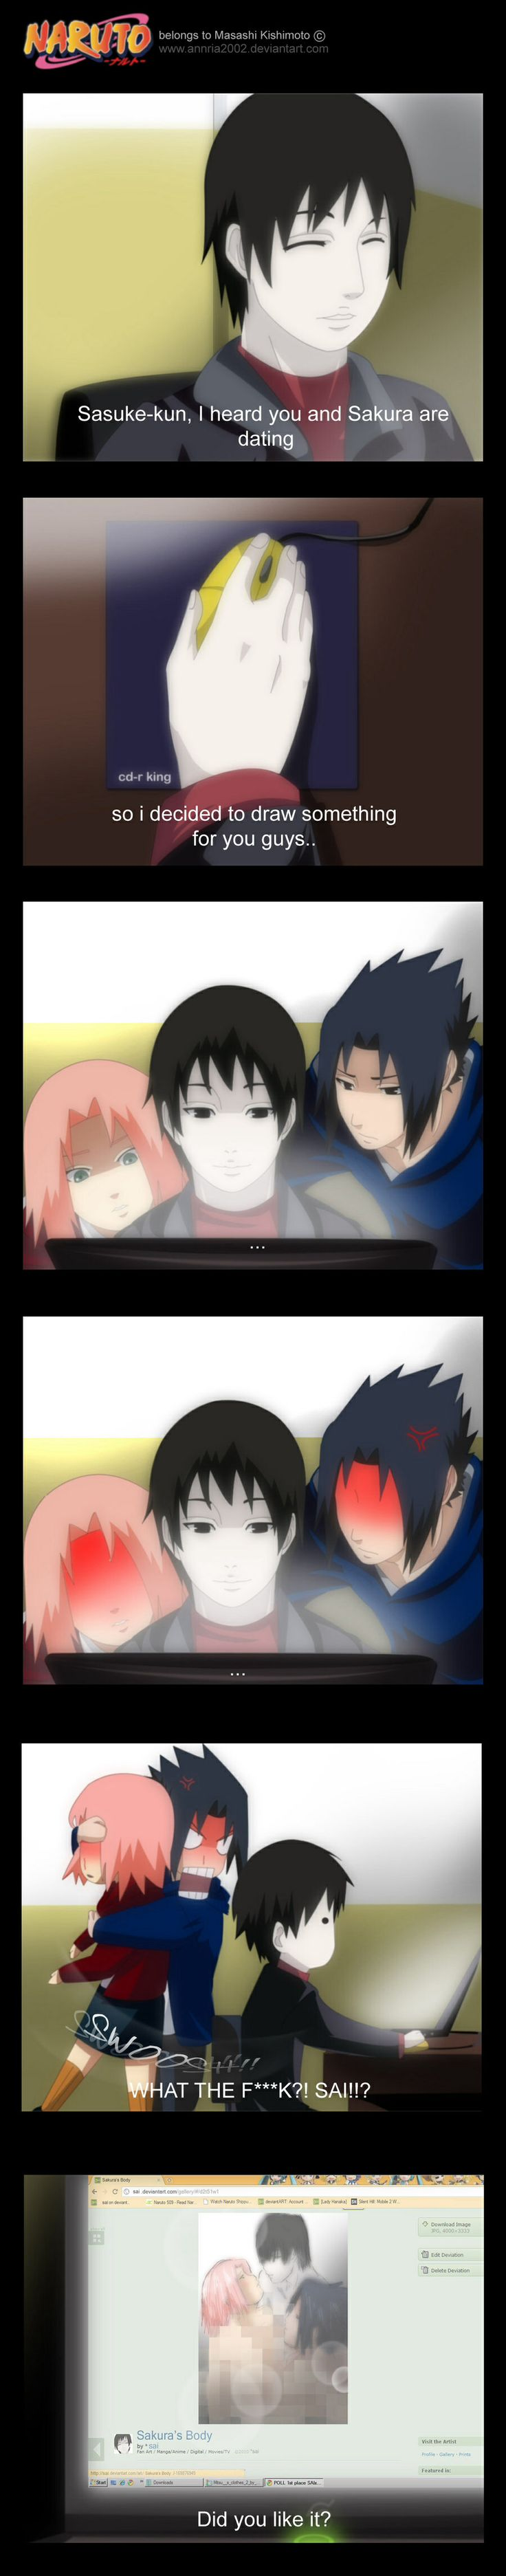 Seriously Sai, WTF?! And why are you in the picture too?!